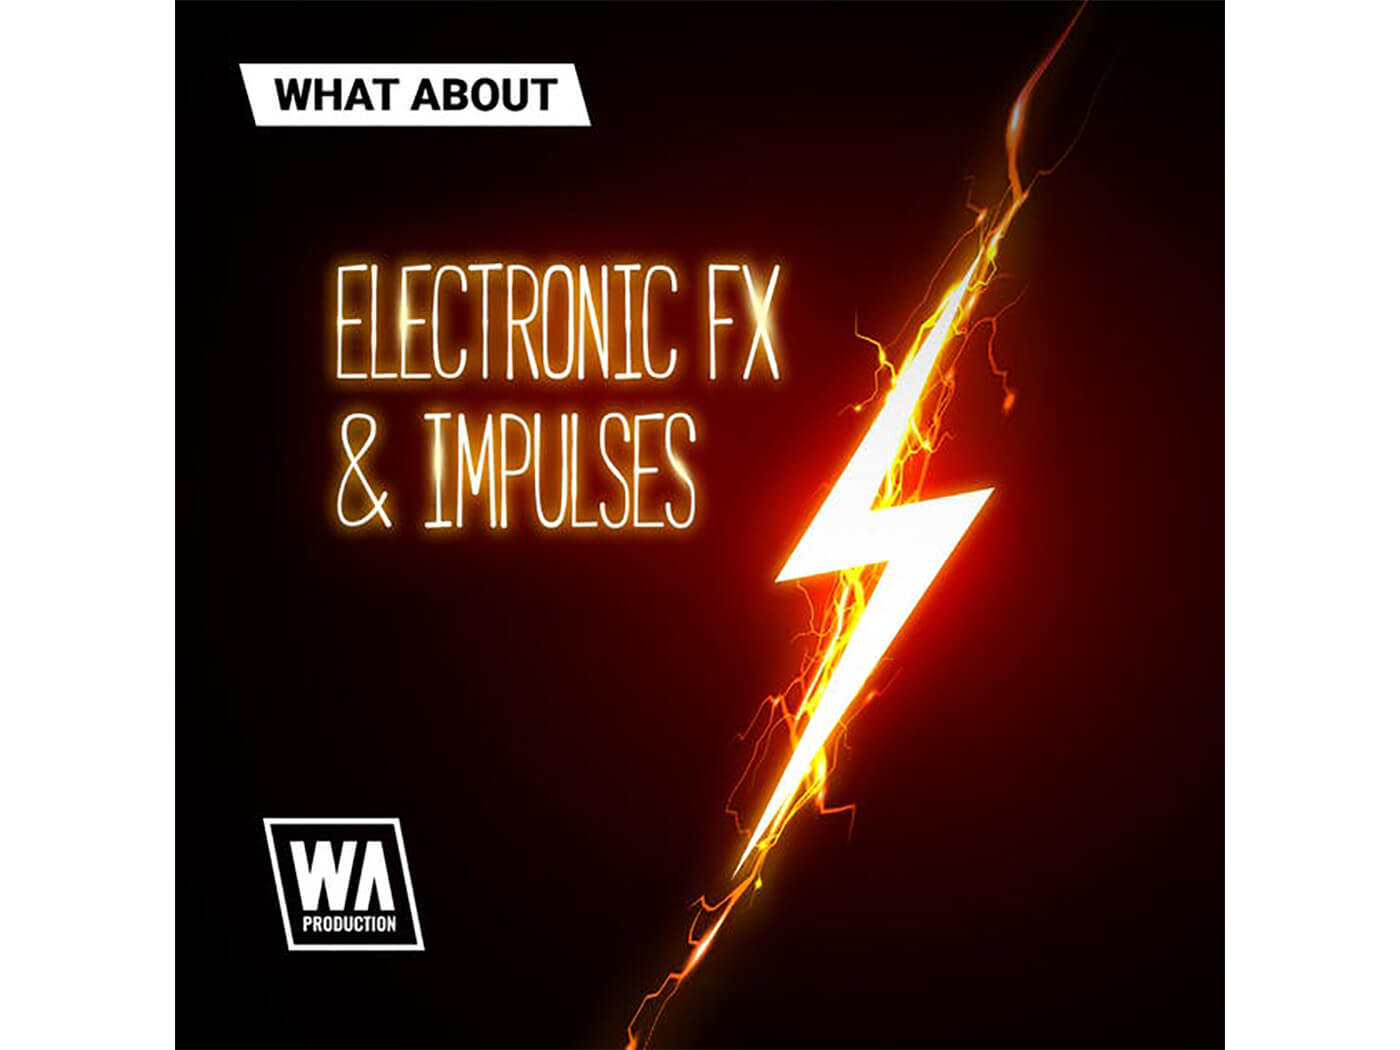 W.A.Production - Electronic FX & Impulses